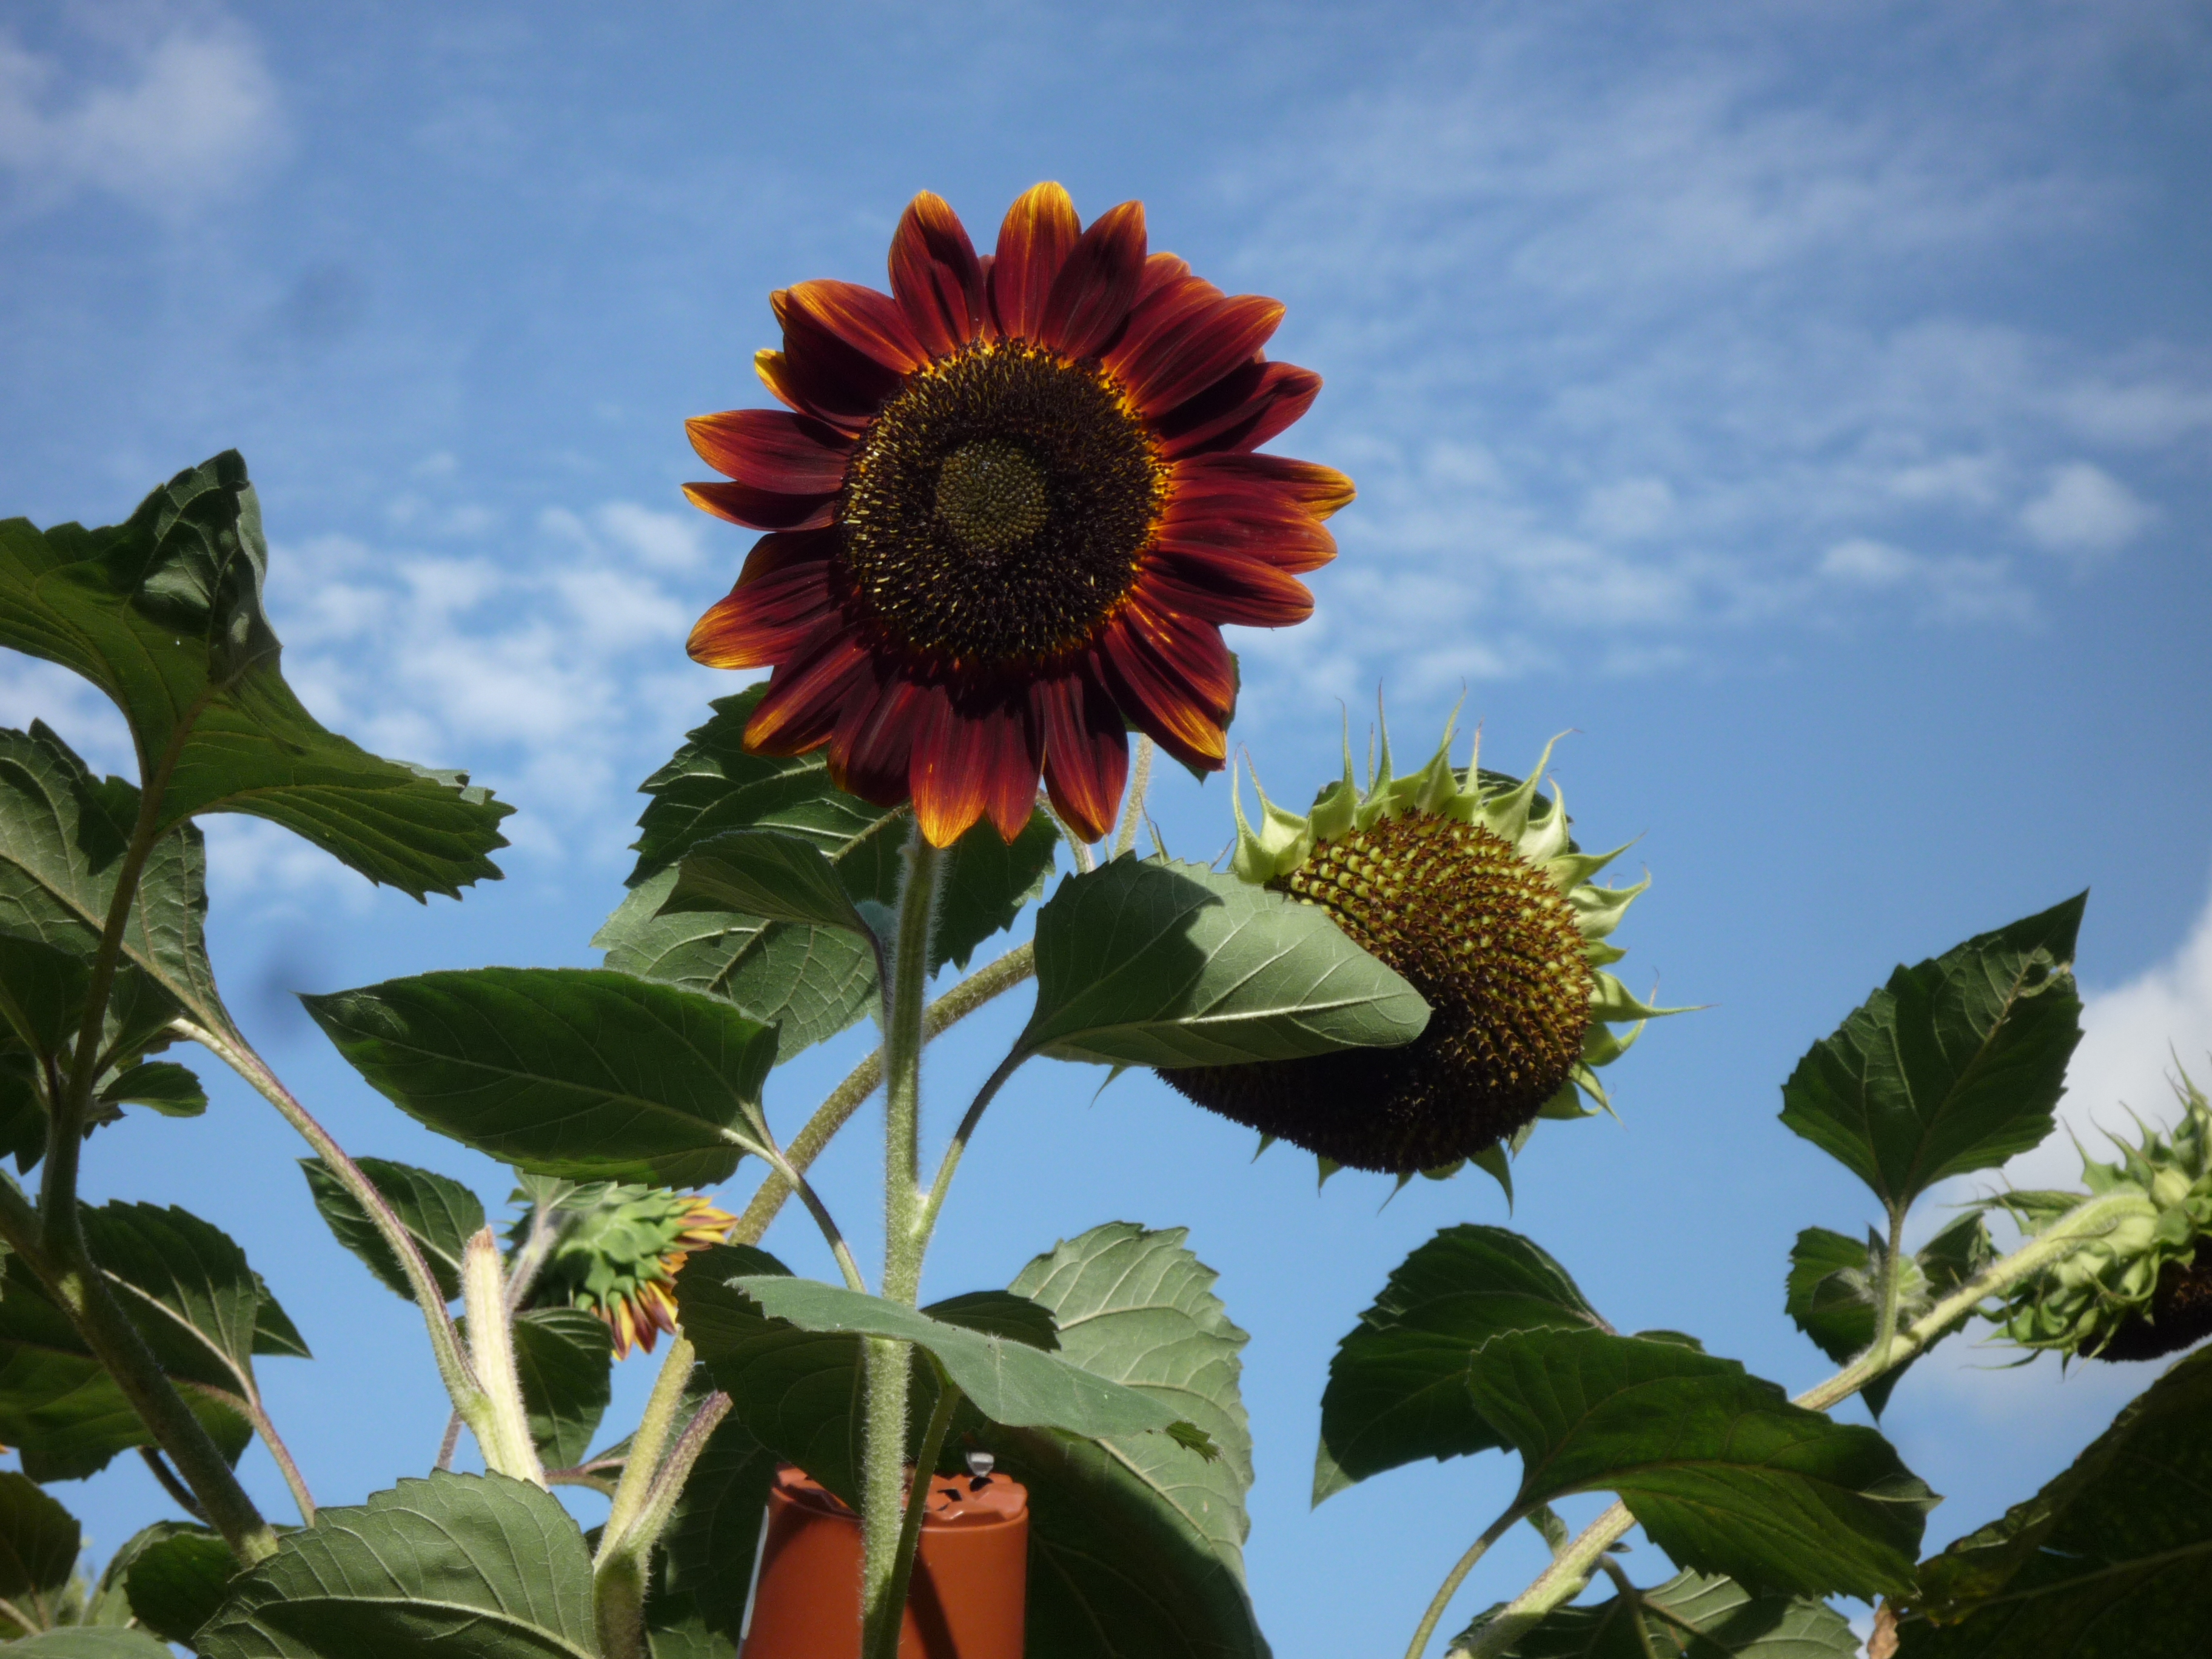 Burnt orange sunflower